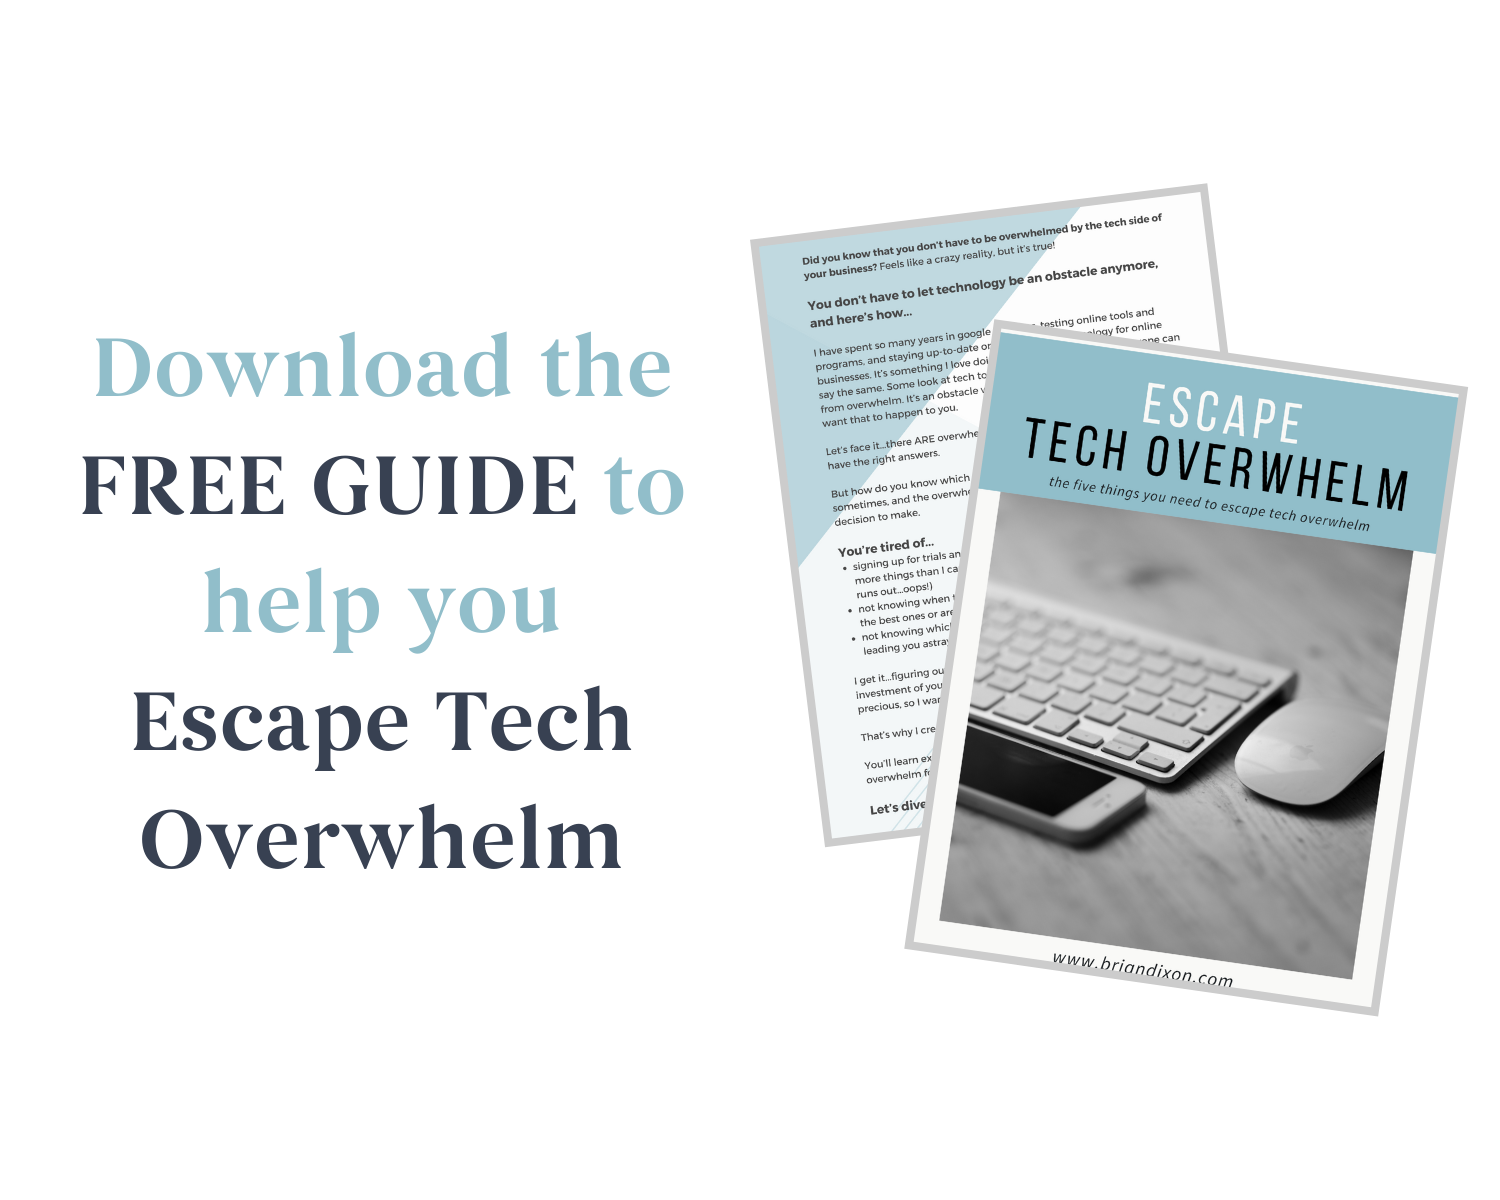 Download The Free Guide to help you Escape Tech Overwhelm